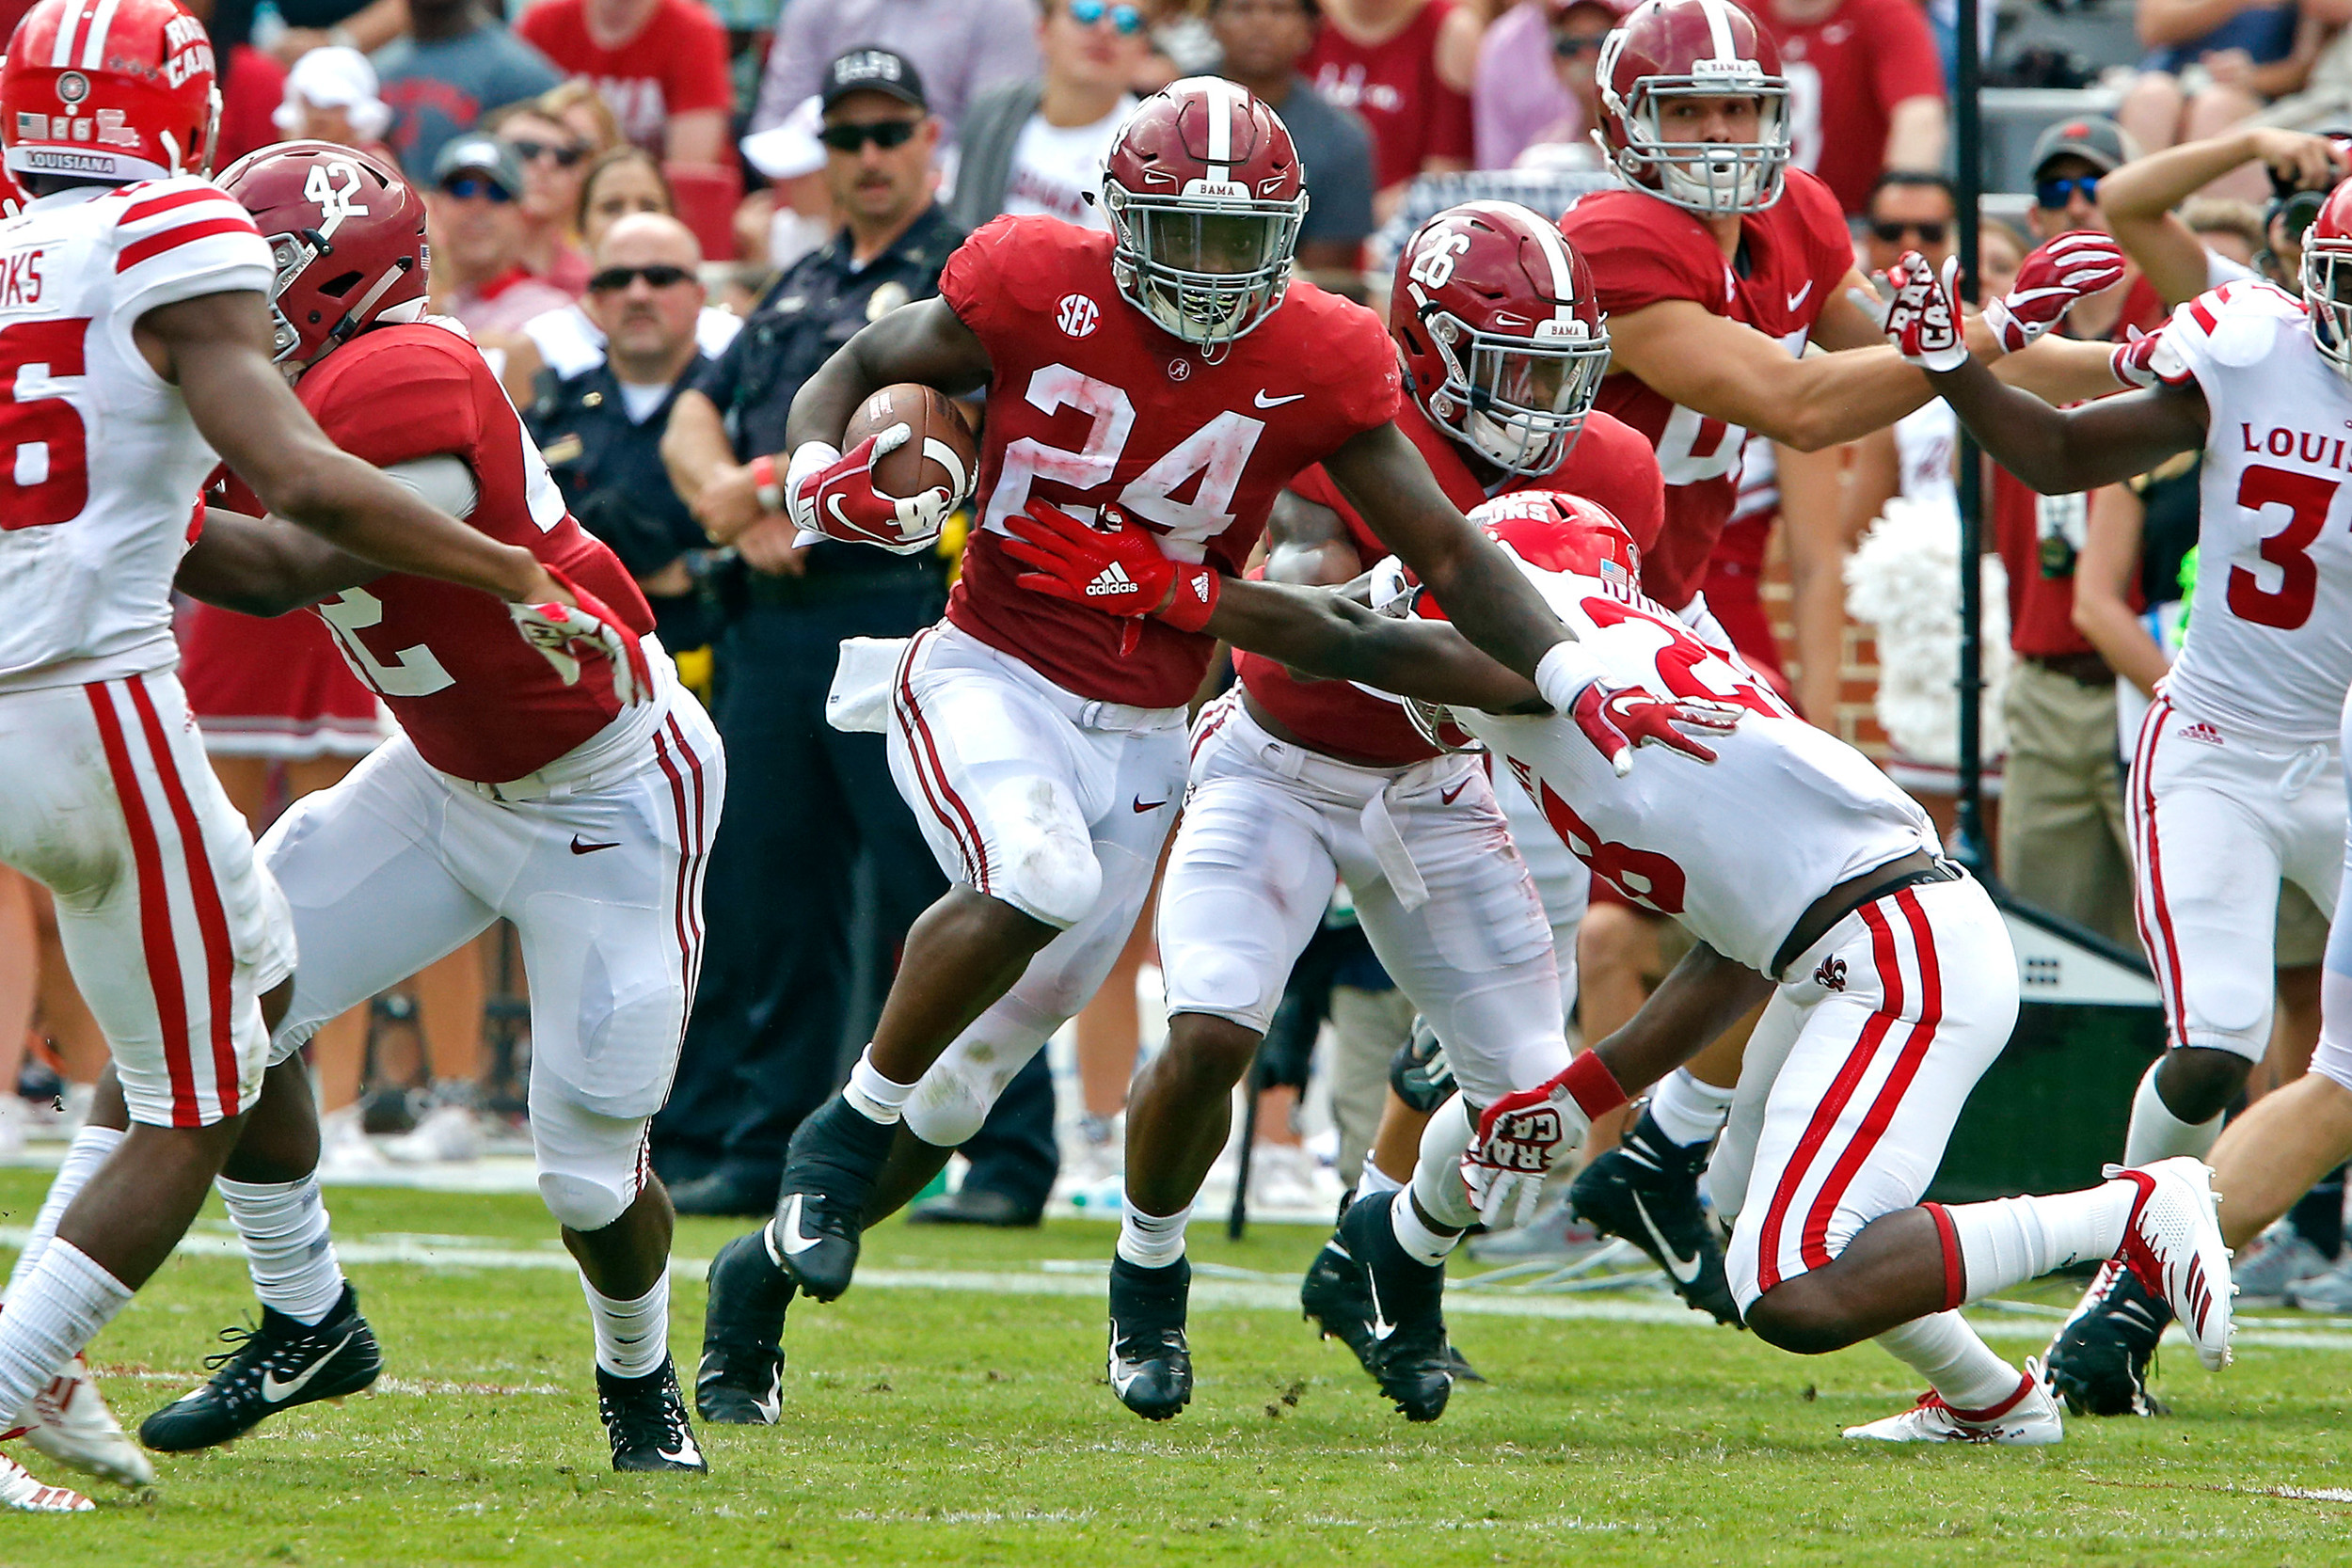 Alabama Crimson Tide running back Brian Robinson Jr. (24) gains yards against Louisiana-Lafayette at Bryant-Denny Stadium in Tuscaloosa, Al on September 29, 2018. Jason Clark / Daily Mountain Eagle